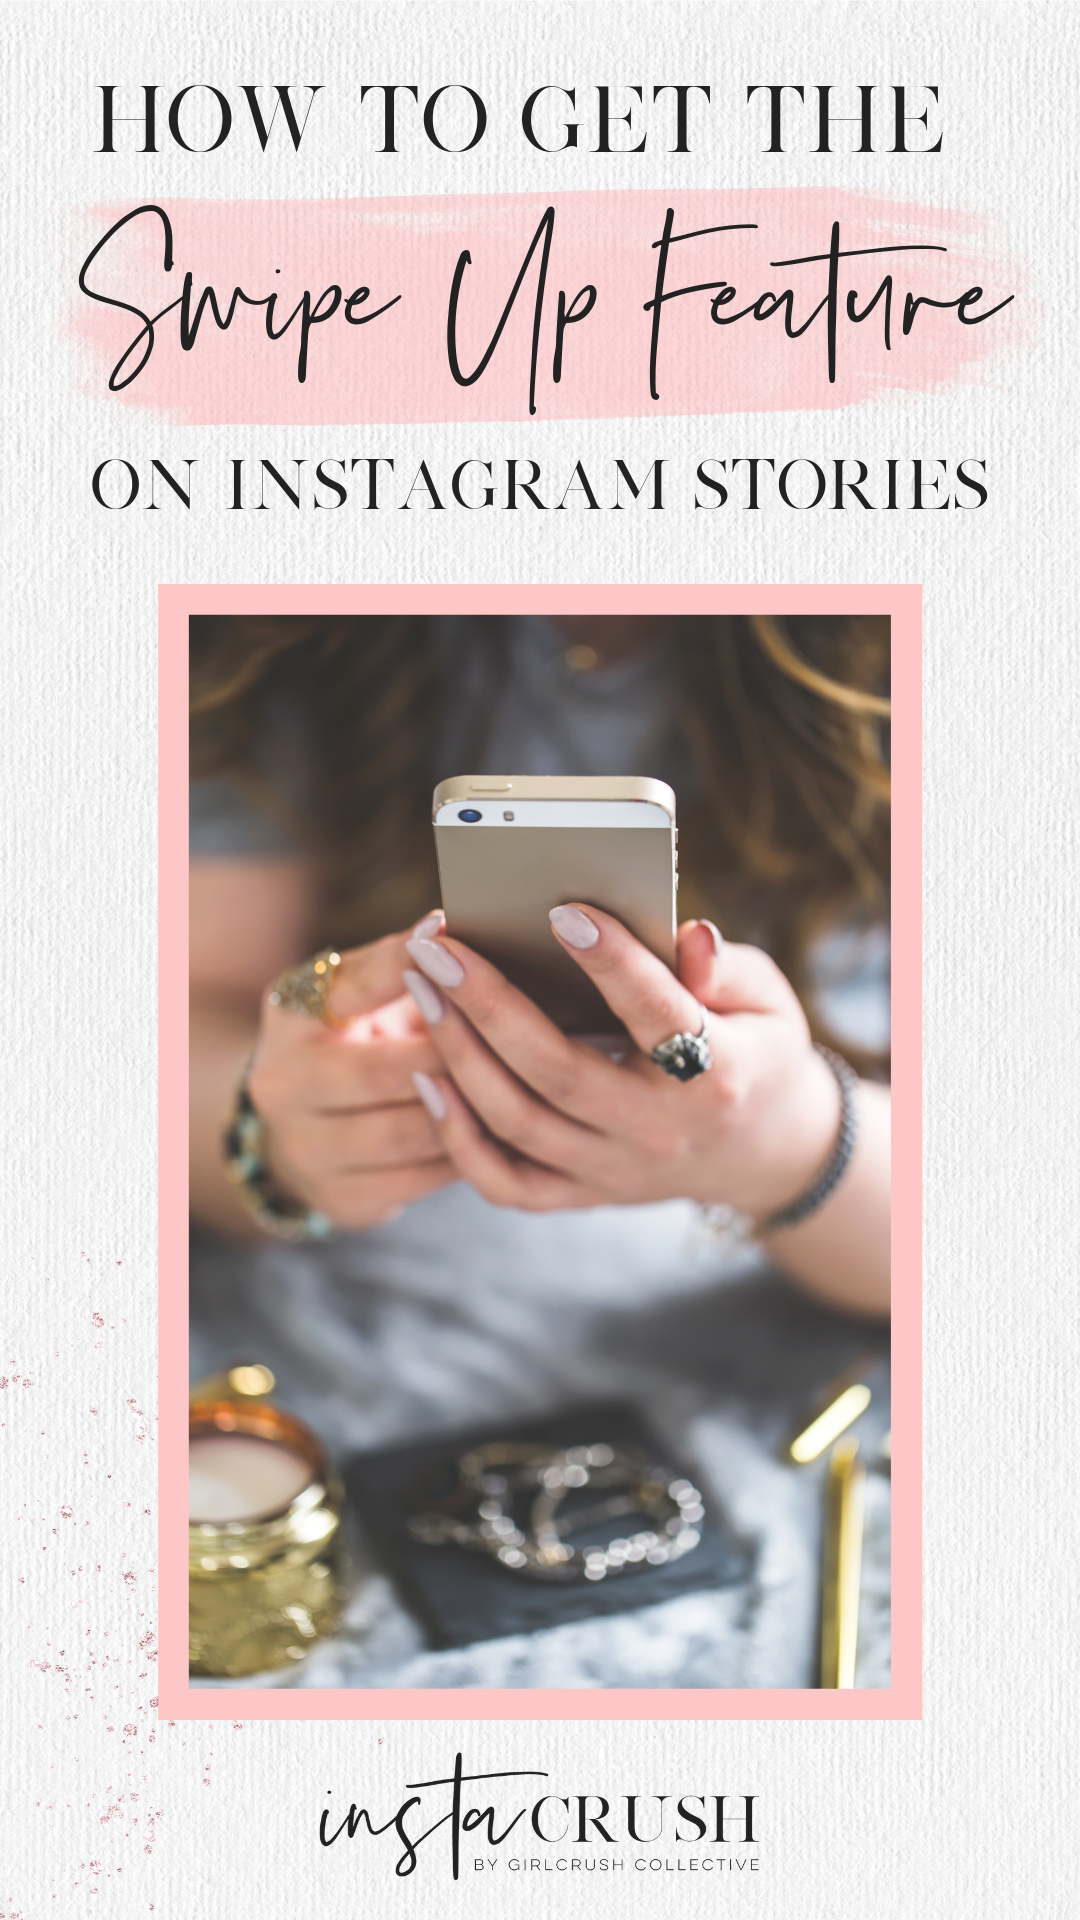 Have You Seen Those Instagram Stories That Let You Swipe Up To Go Directly To A Link Much Easier T Instagram Marketing Tips Instagram Story Instagram Strategy